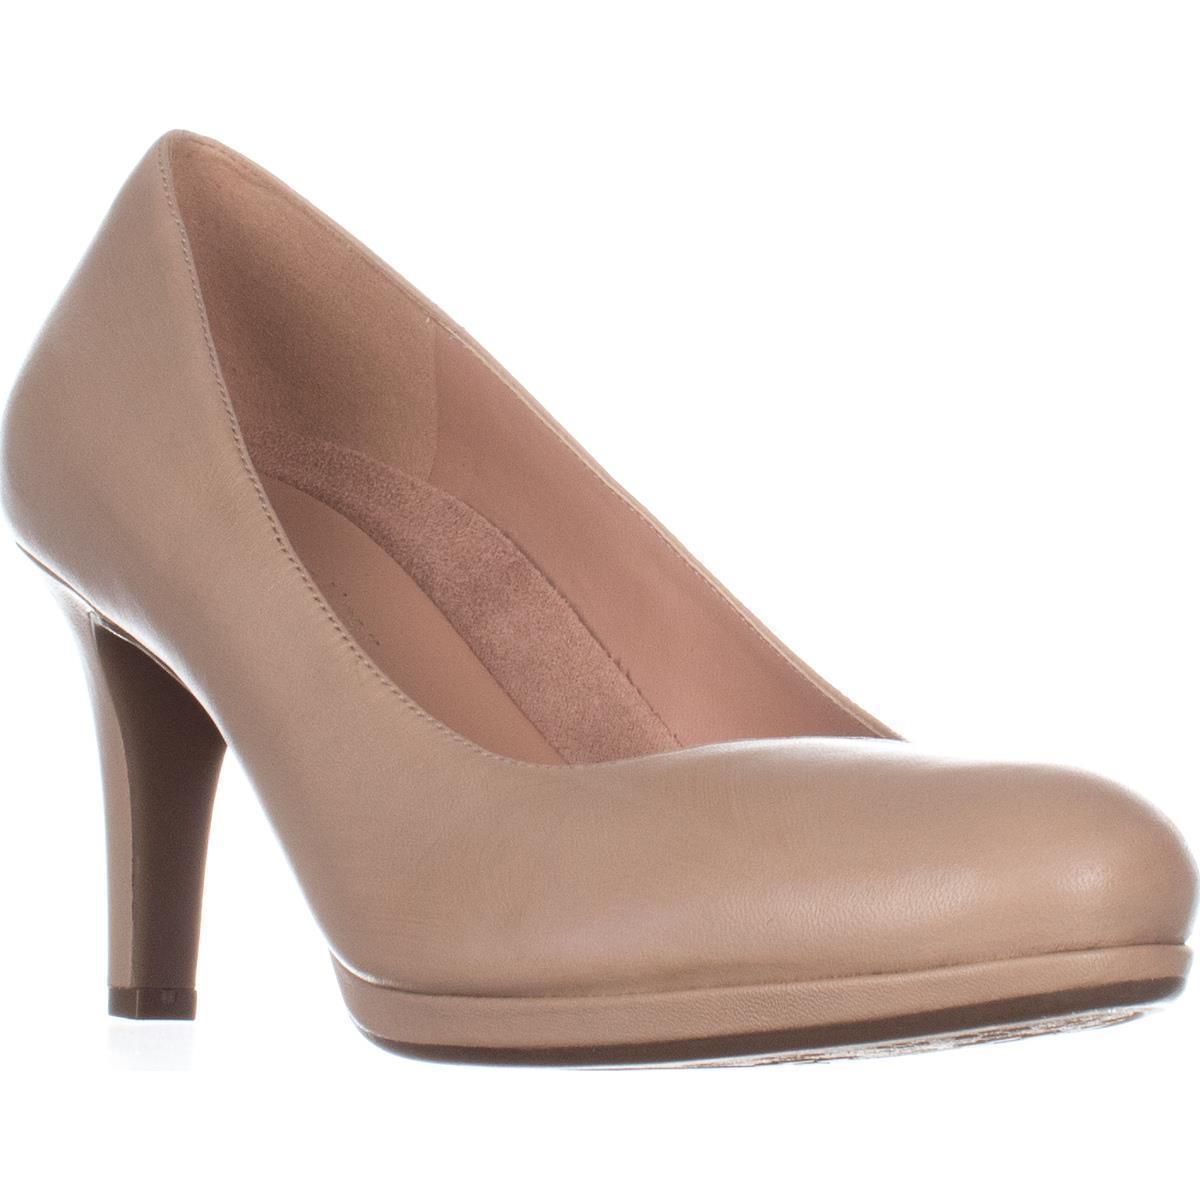 Naturalizer Womens Michelle Economical, stylish, and eye-catching shoes